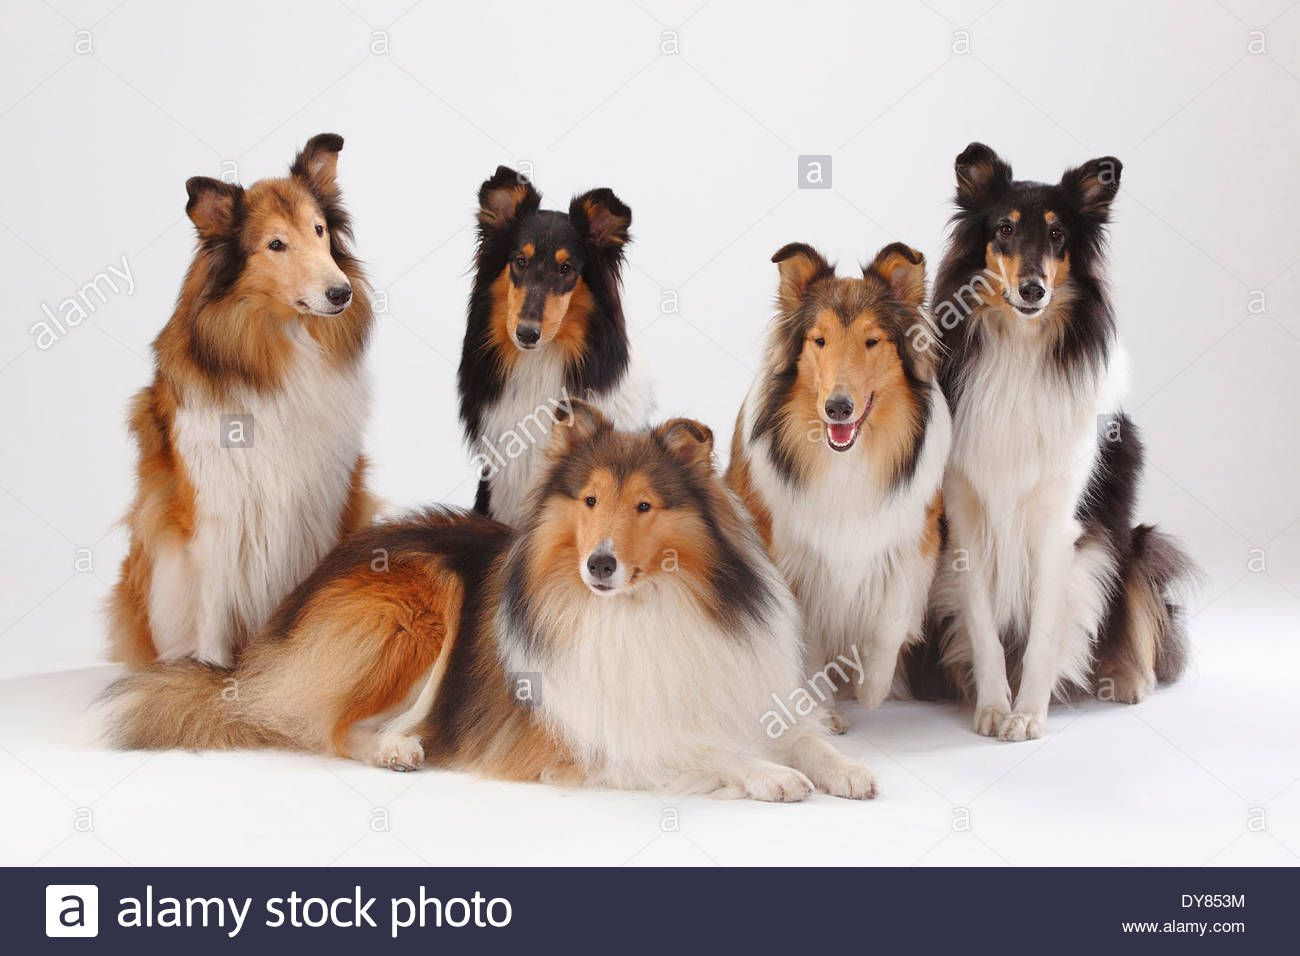 rough-collies-male-and-bitches-DY853M.jpg (1300×956)